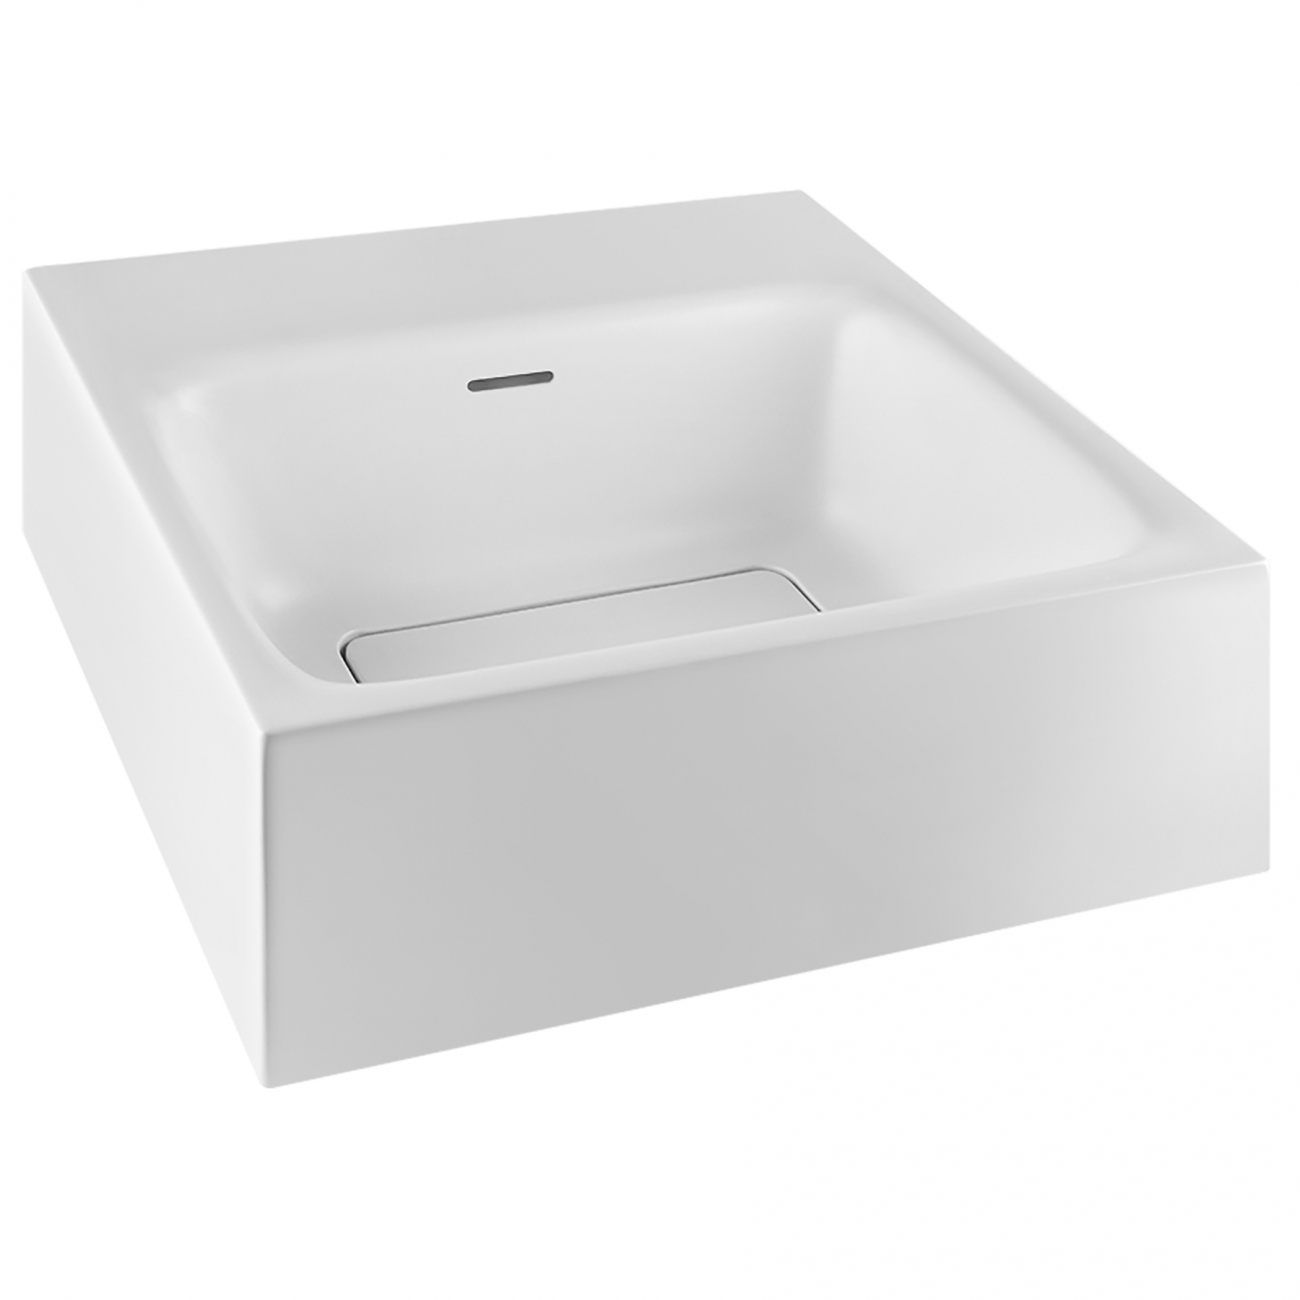 Gessi Rettangolo wall mounted or counter washbasin